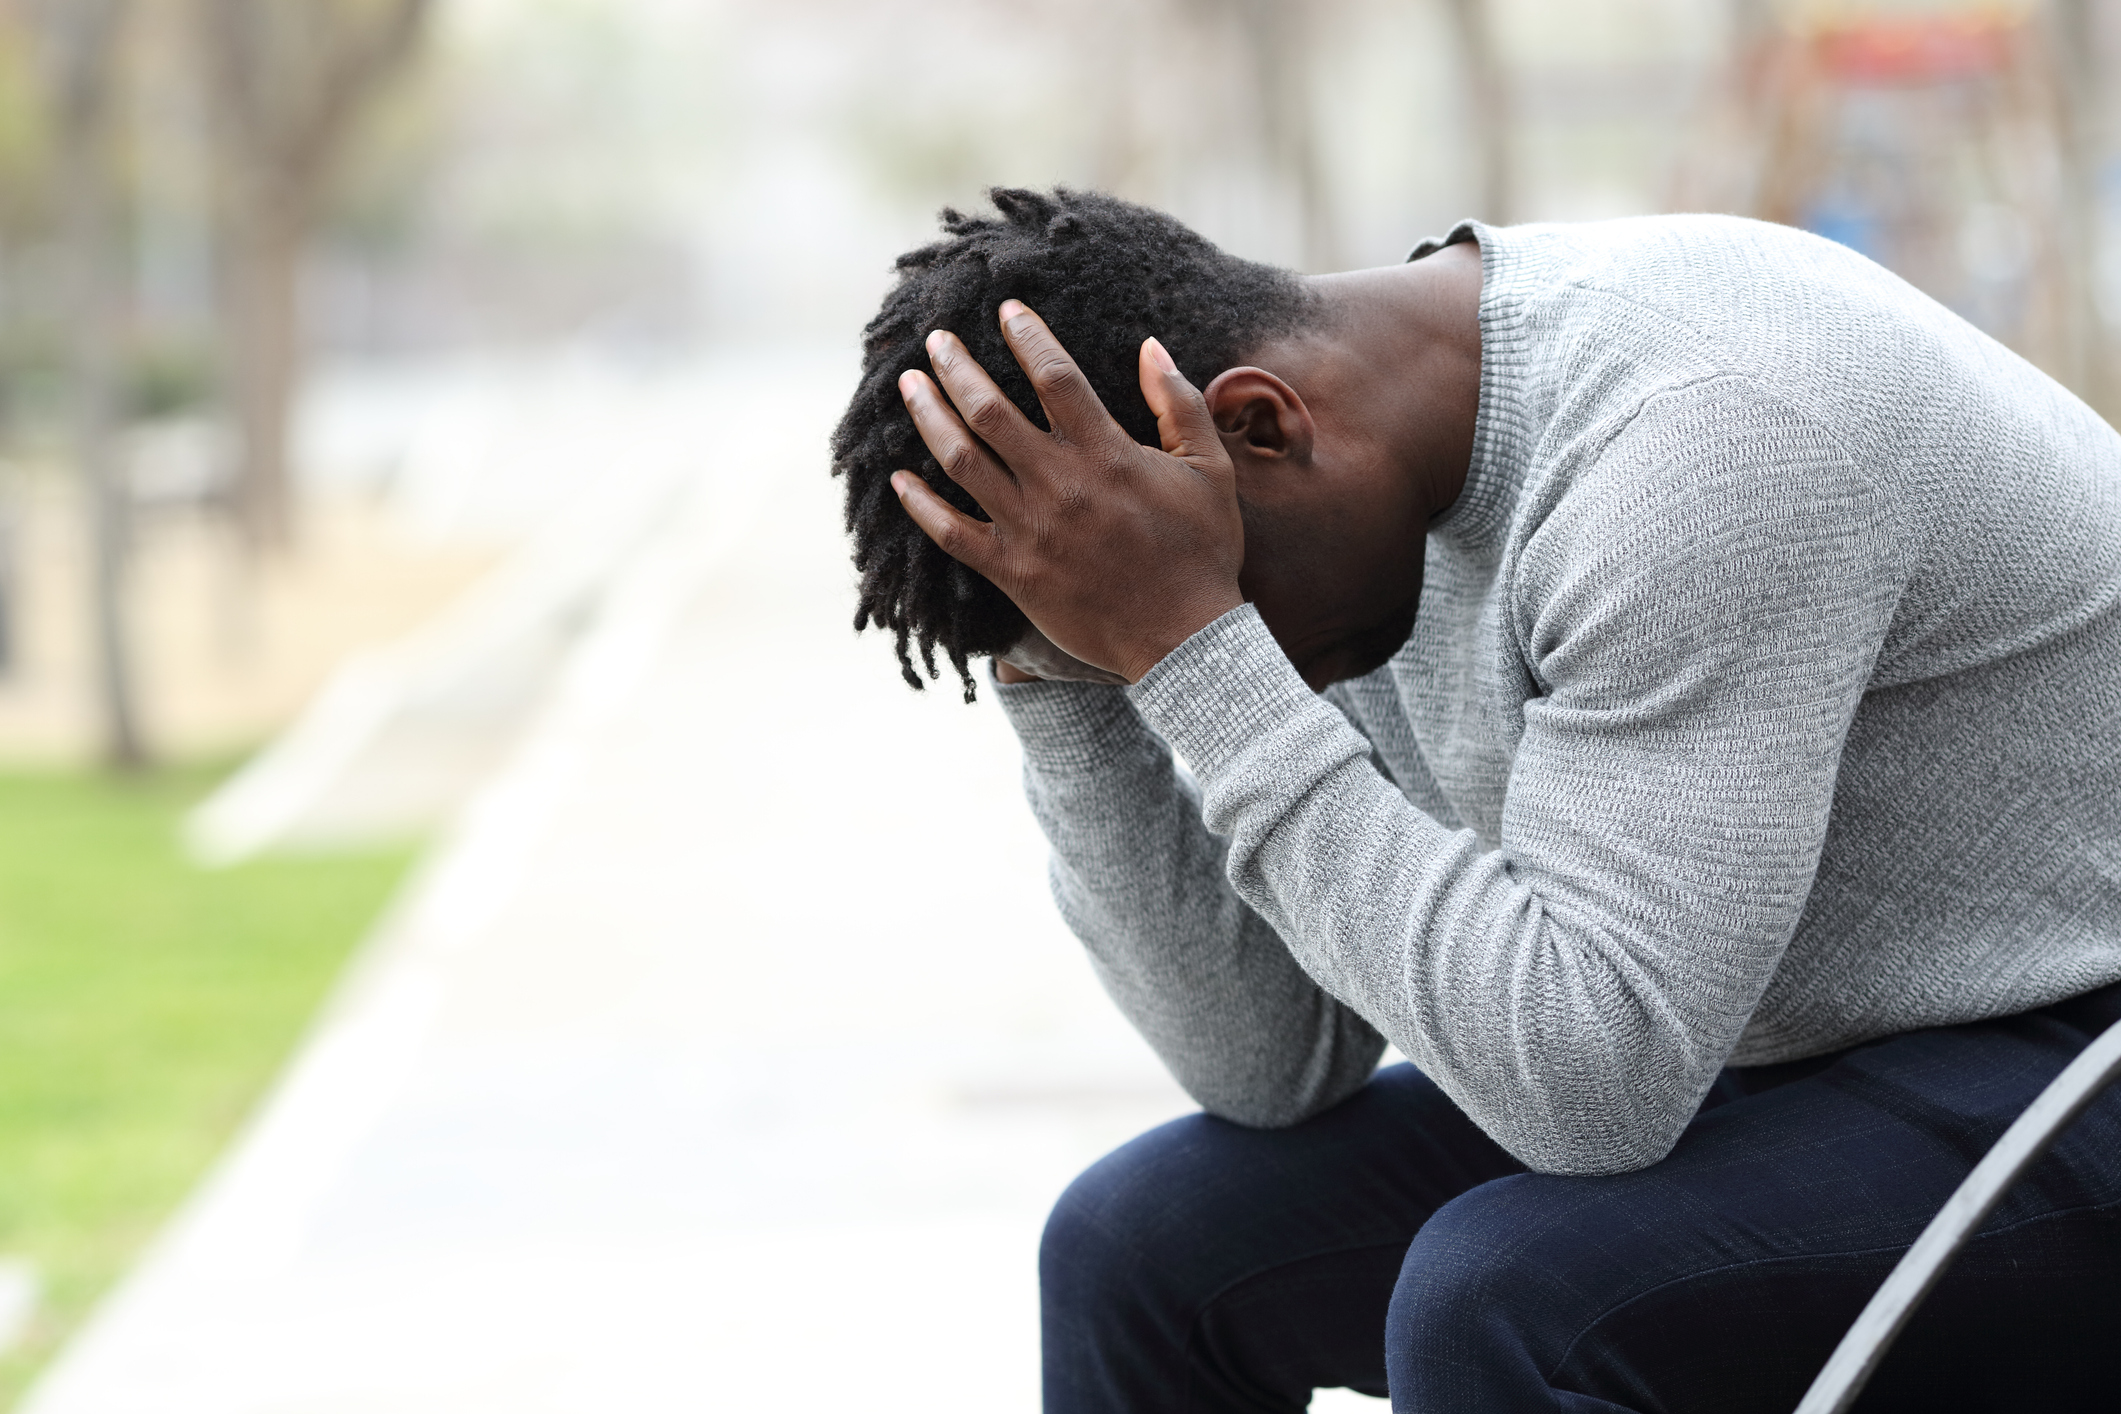 Sad depressed black man on a bench in a park | The Daily